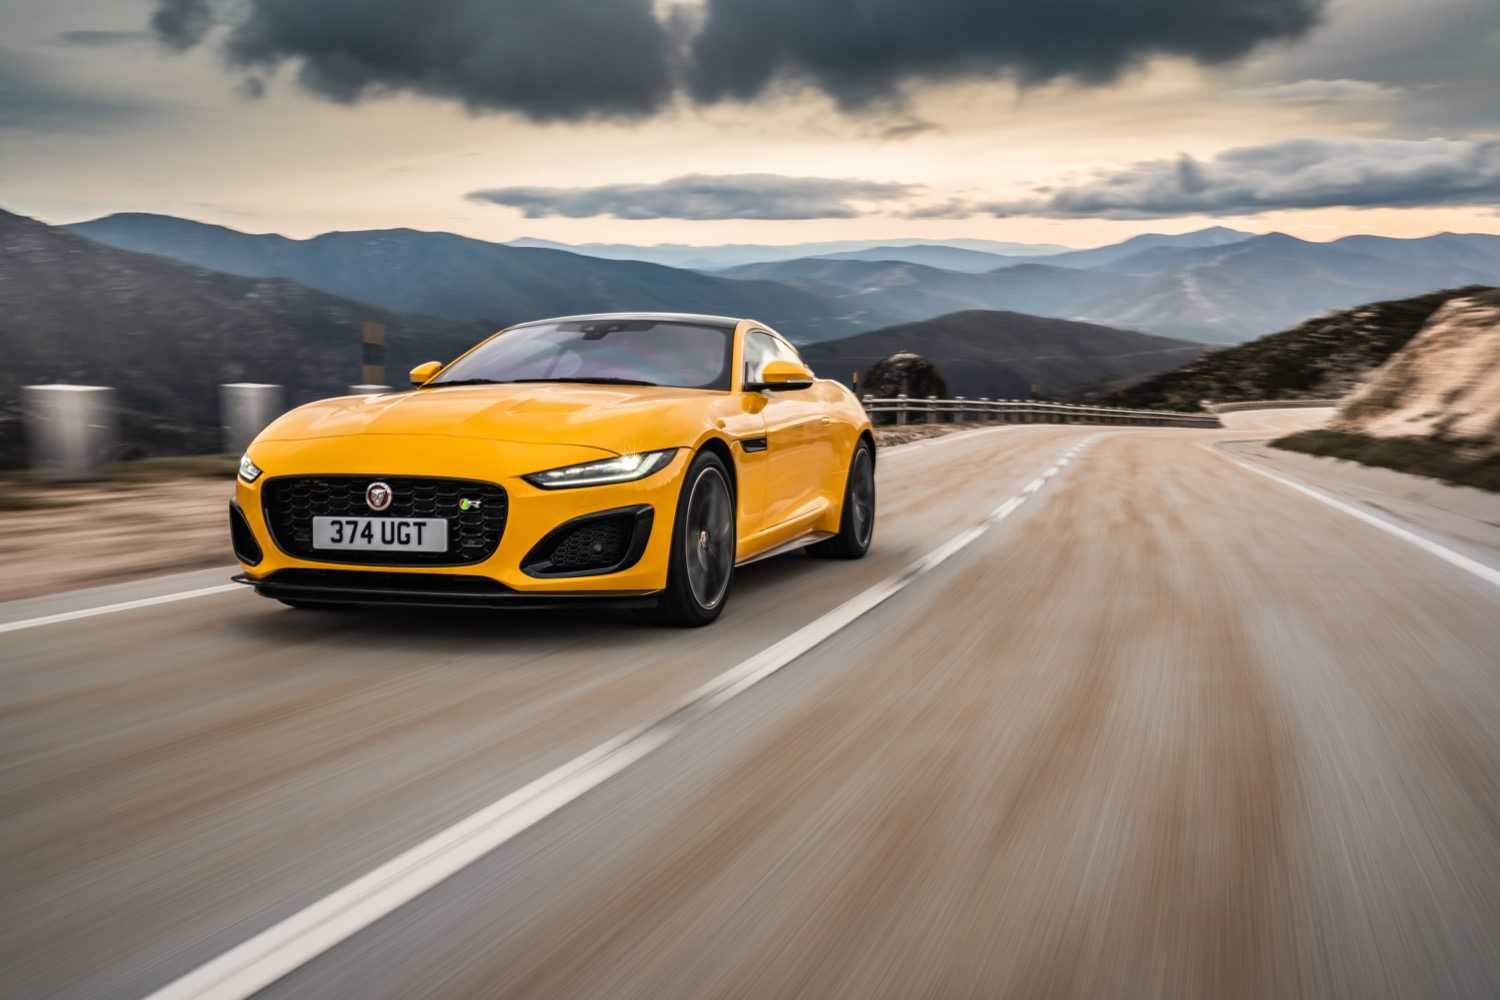 2020_jaguar_ftype_v8_awd_coupe_yellow_test_13